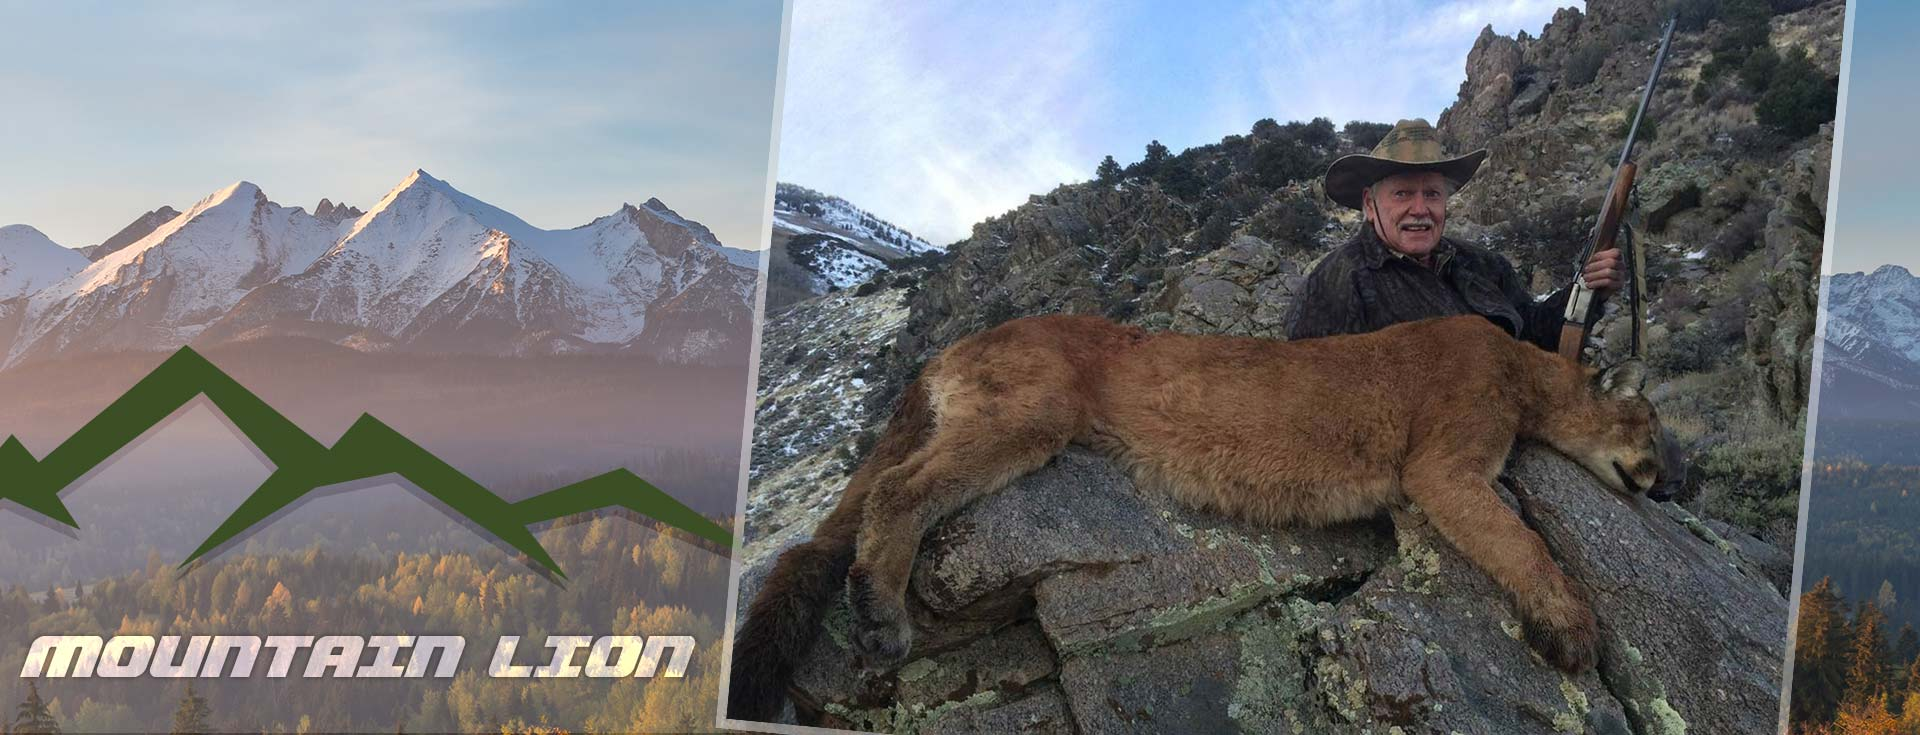 Nevada Mountain Lion Hunts & Guide Service